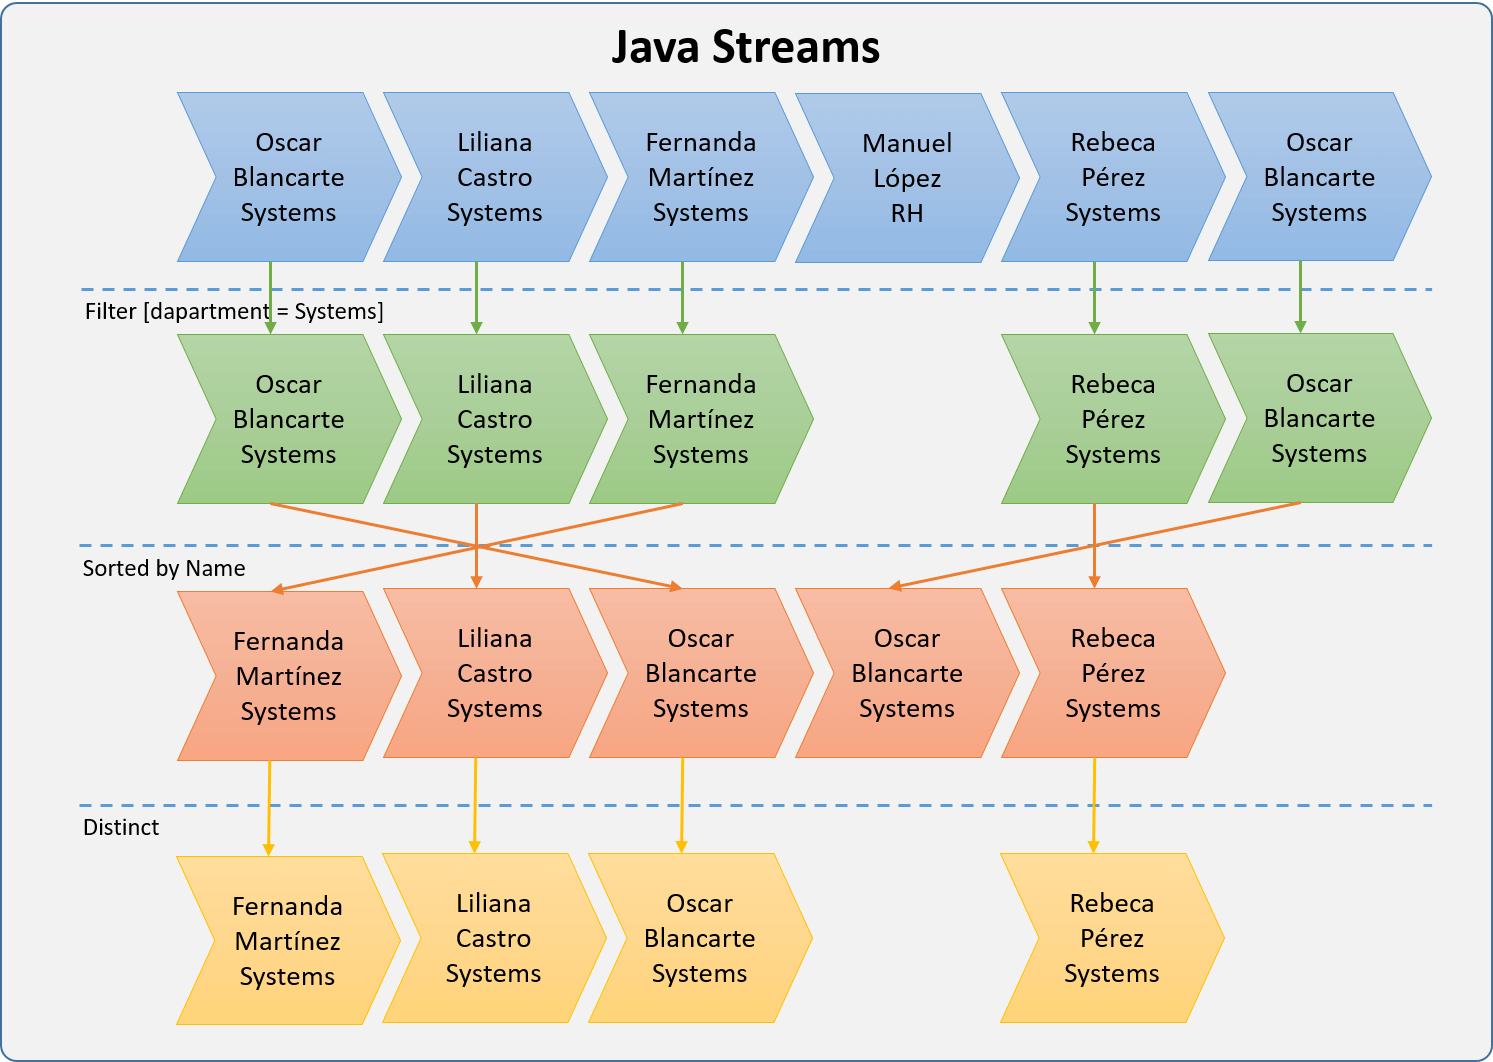 java 8 - Streams